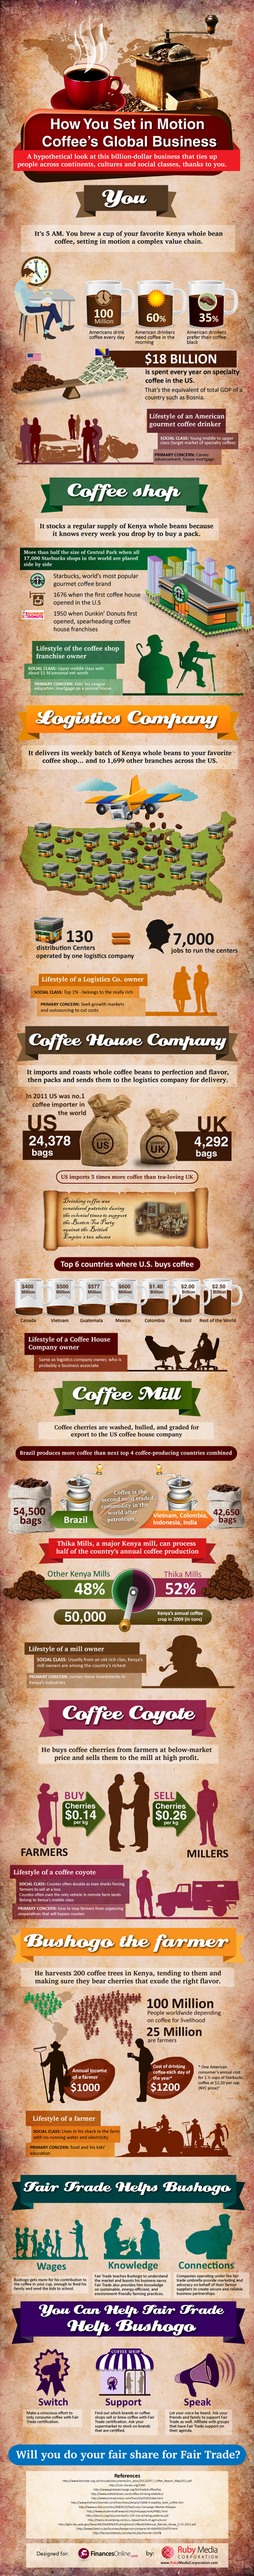 Here's How You Make Coffee Trade A Business Worth Billions